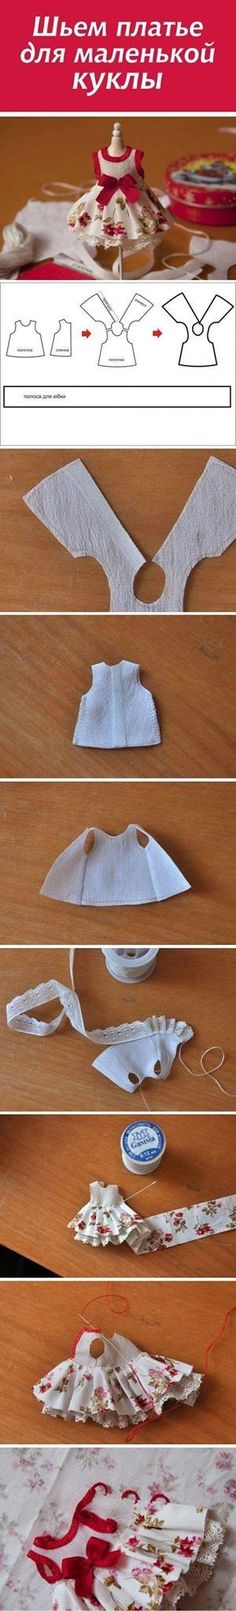 Шьем платье для маленькой куклы / Doll Outfit Tutorial NOTE: use pattern to make dresses for pin/clothespin dolls Doll Clothes Patterns, Doll Patterns, Sewing Patterns, Baby Patterns, Doll Crafts, Sewing Crafts, Sewing Projects, Sewing Diy, Dress Sewing